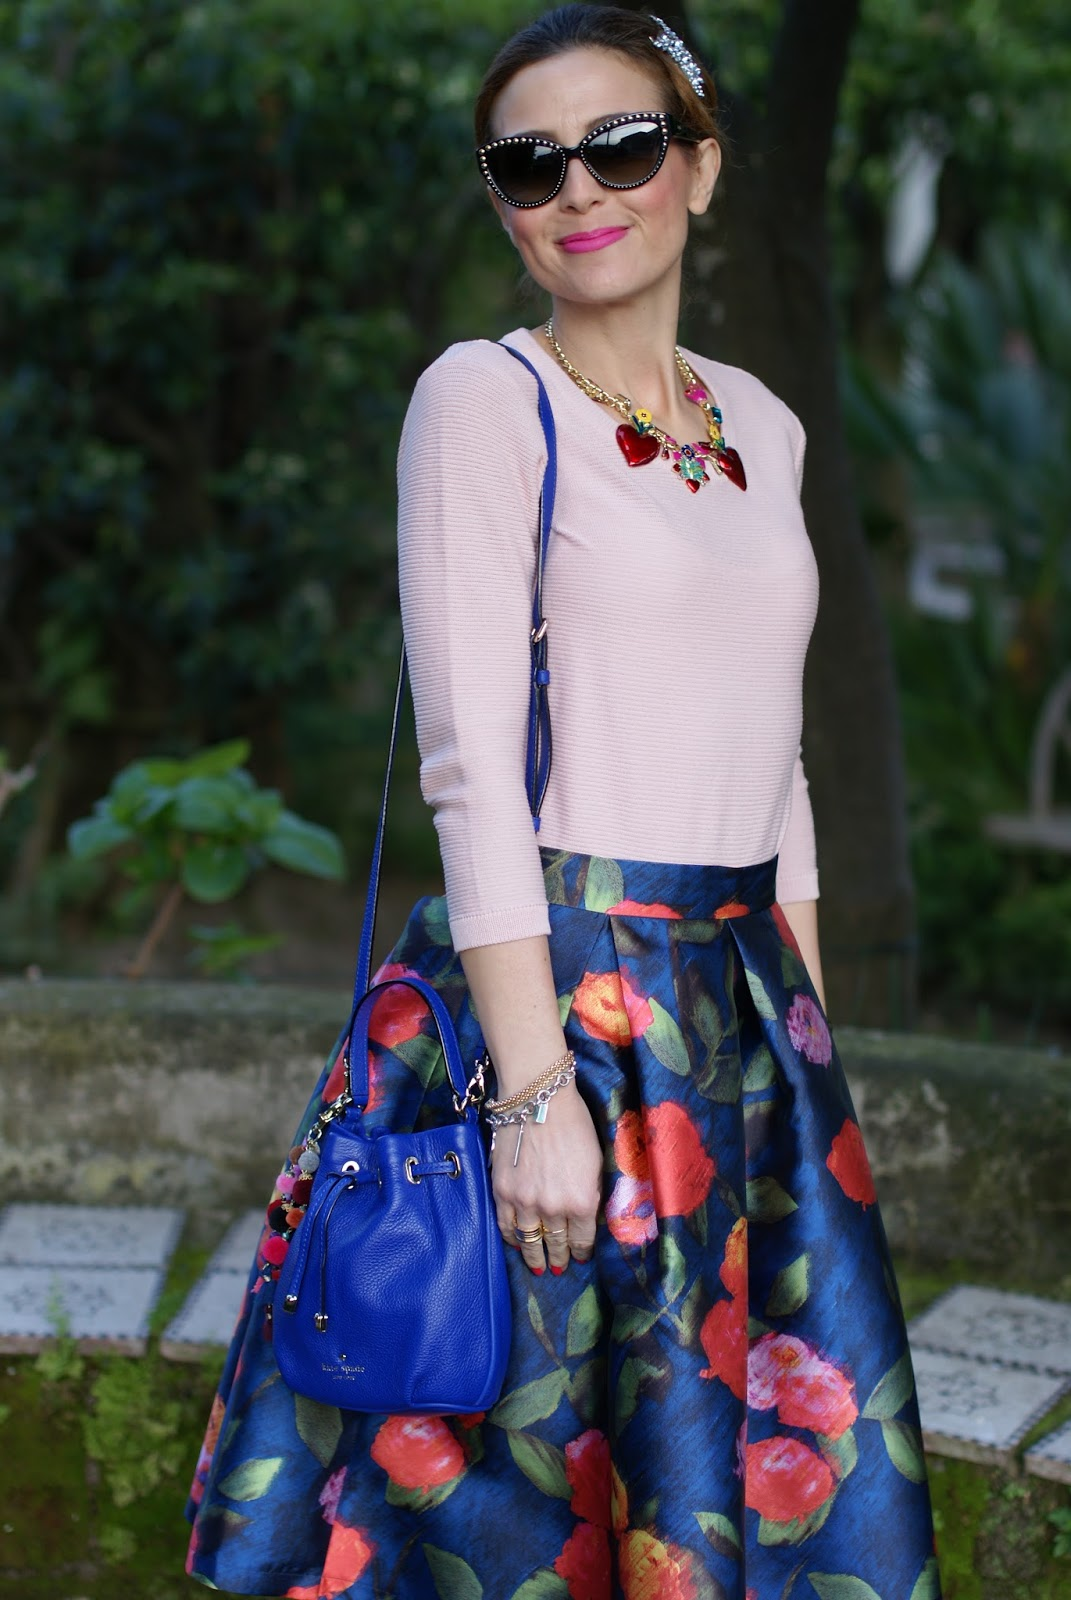 Paccio midi skirt, Tommaso Lonardo collana and Kate Spade bucket bag on Fashion and Cookies fashion blog, fashion blogger style